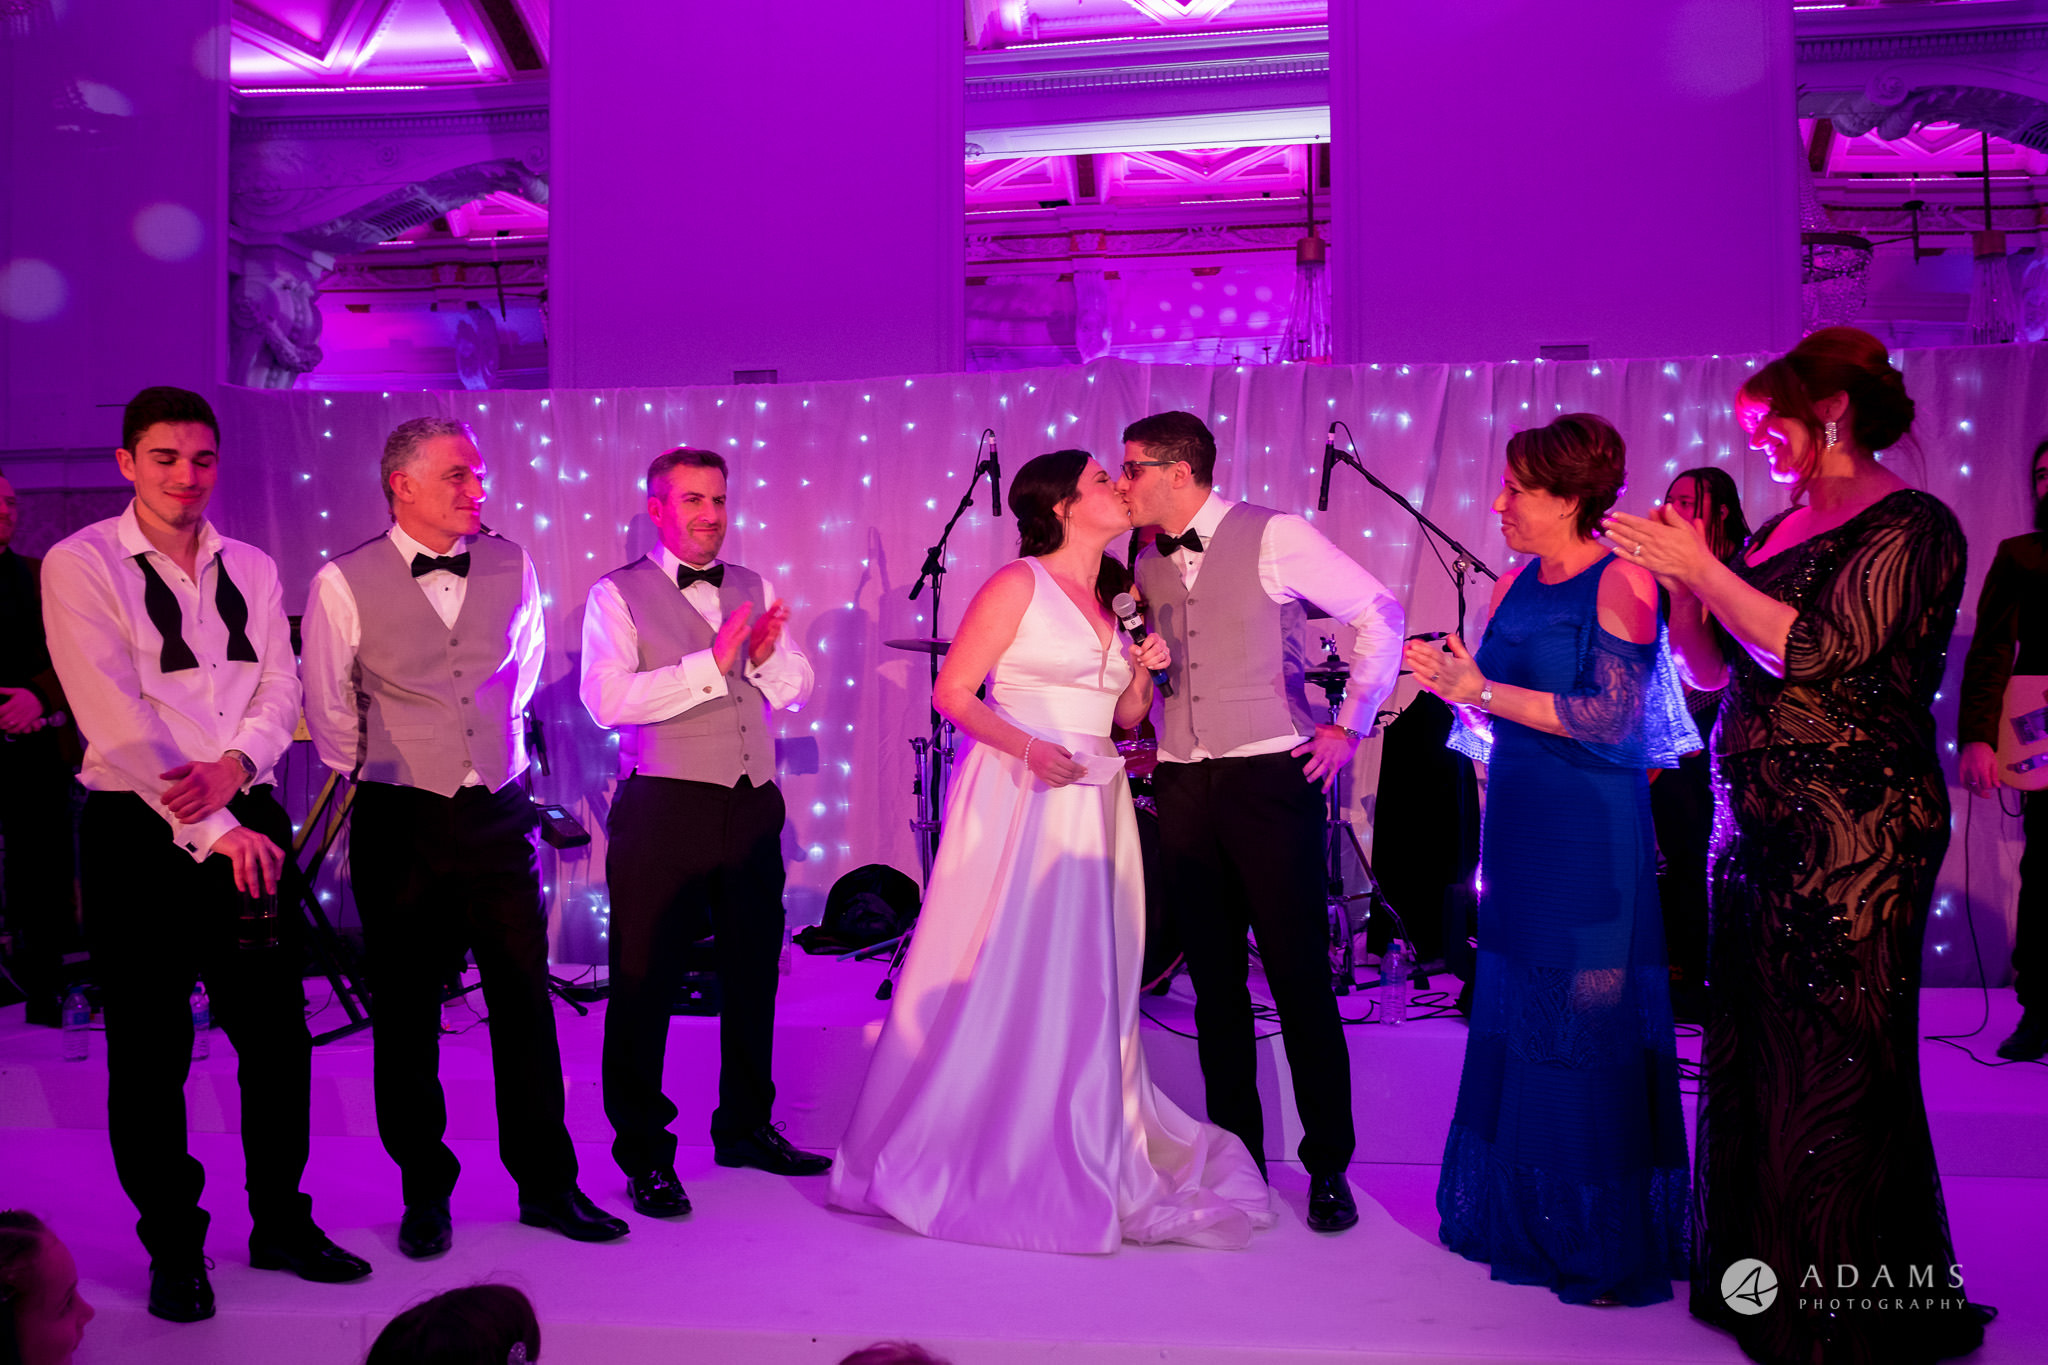 Grand connaught rooms wedding couple kisses each other